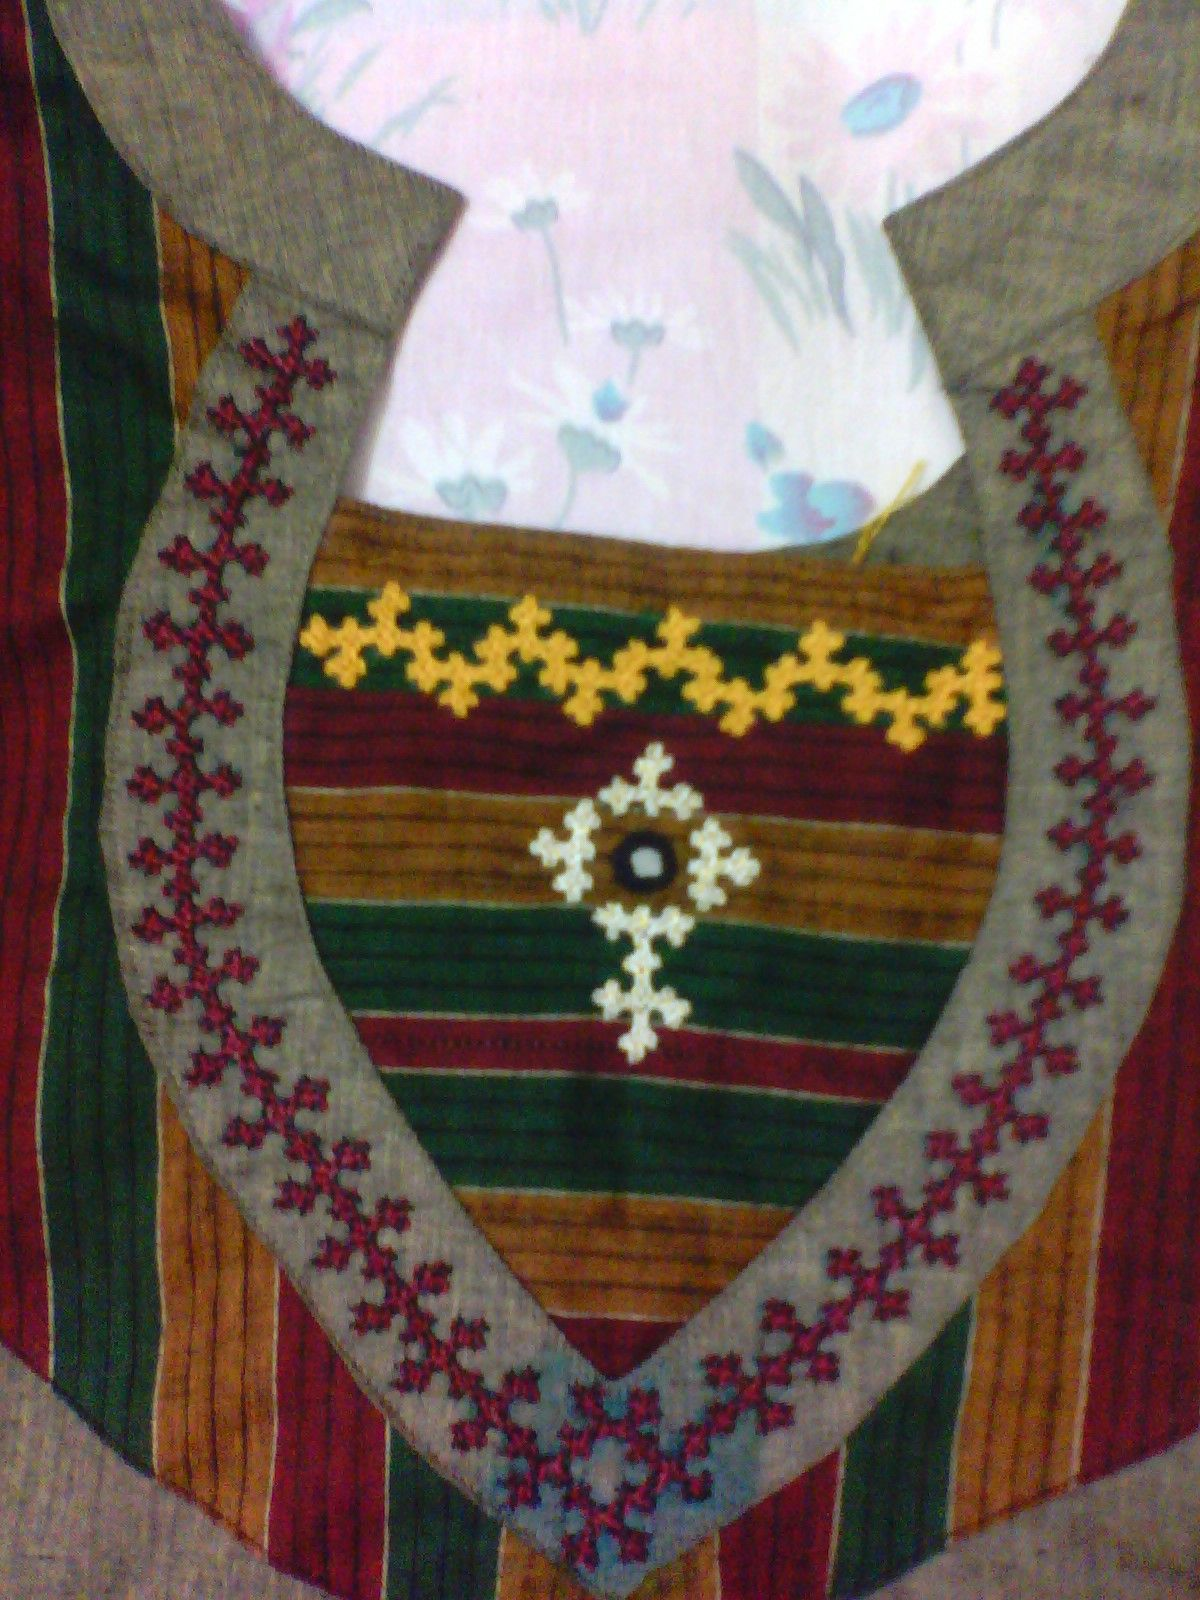 A new kutch work around the neck hand embroidery